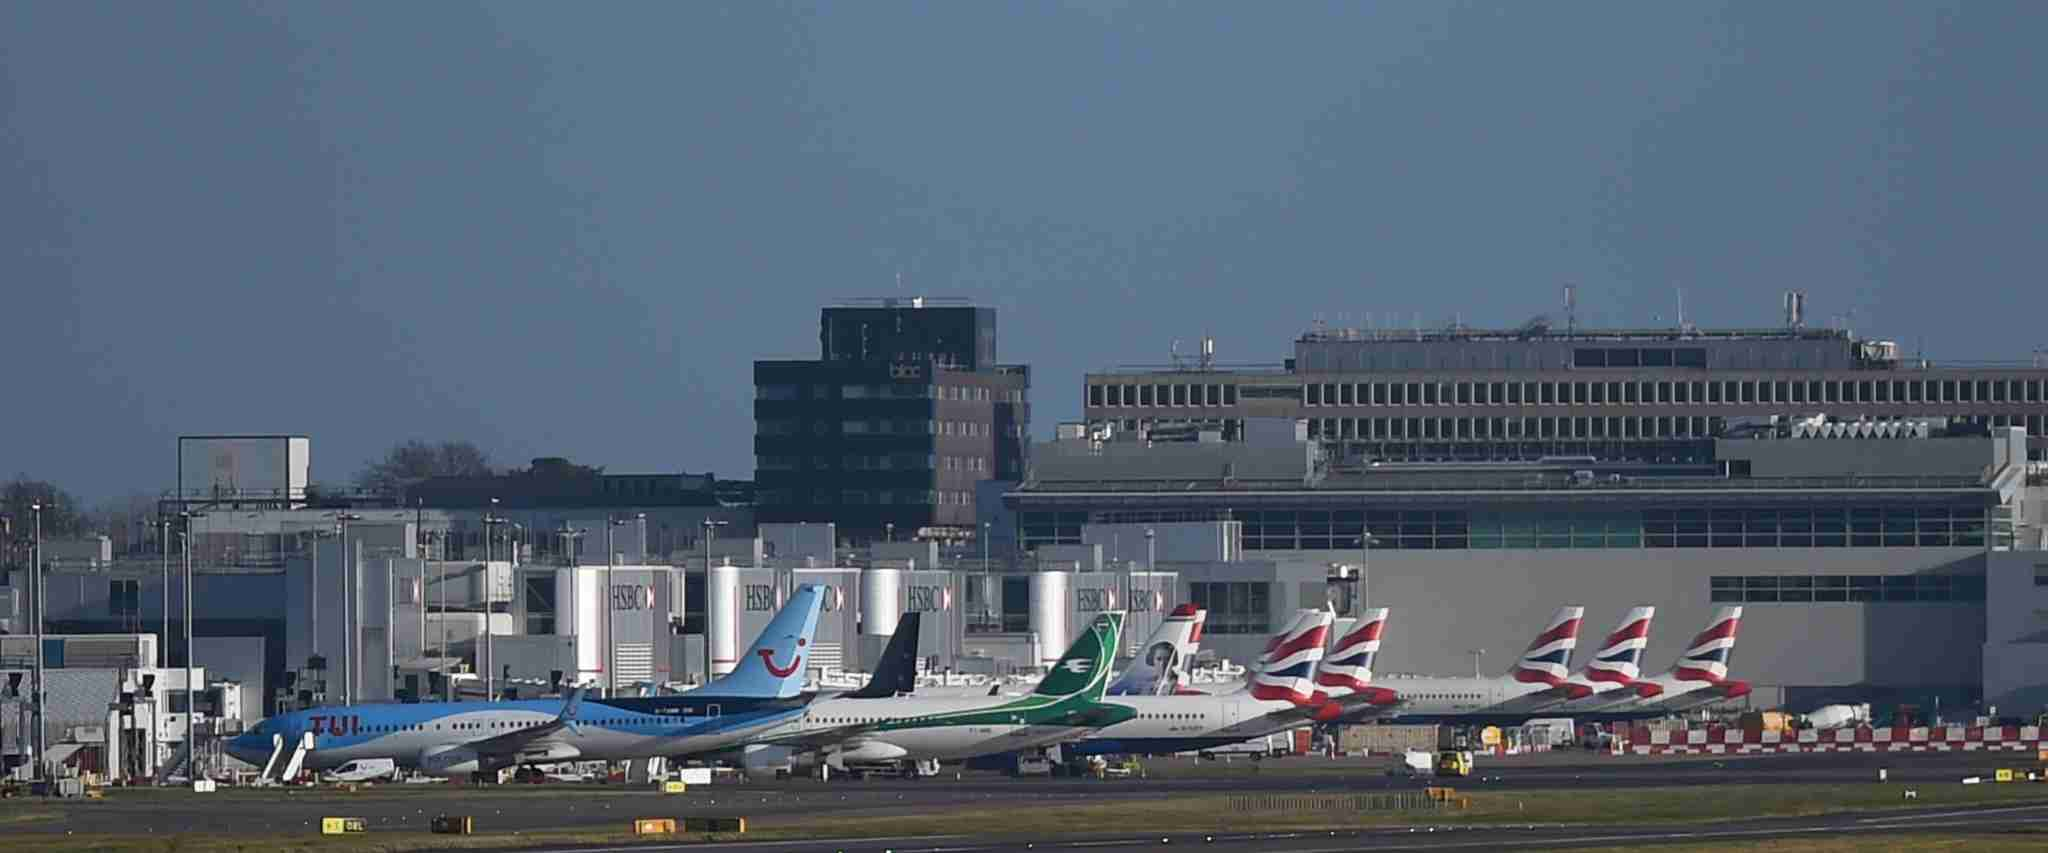 Grounded aircraft next to a terminal at Gatwick airport which has been closed this morning after drones were spotted over the airfield last night and this morning. (Photo by Pete Summers/PA Images via Getty Images)